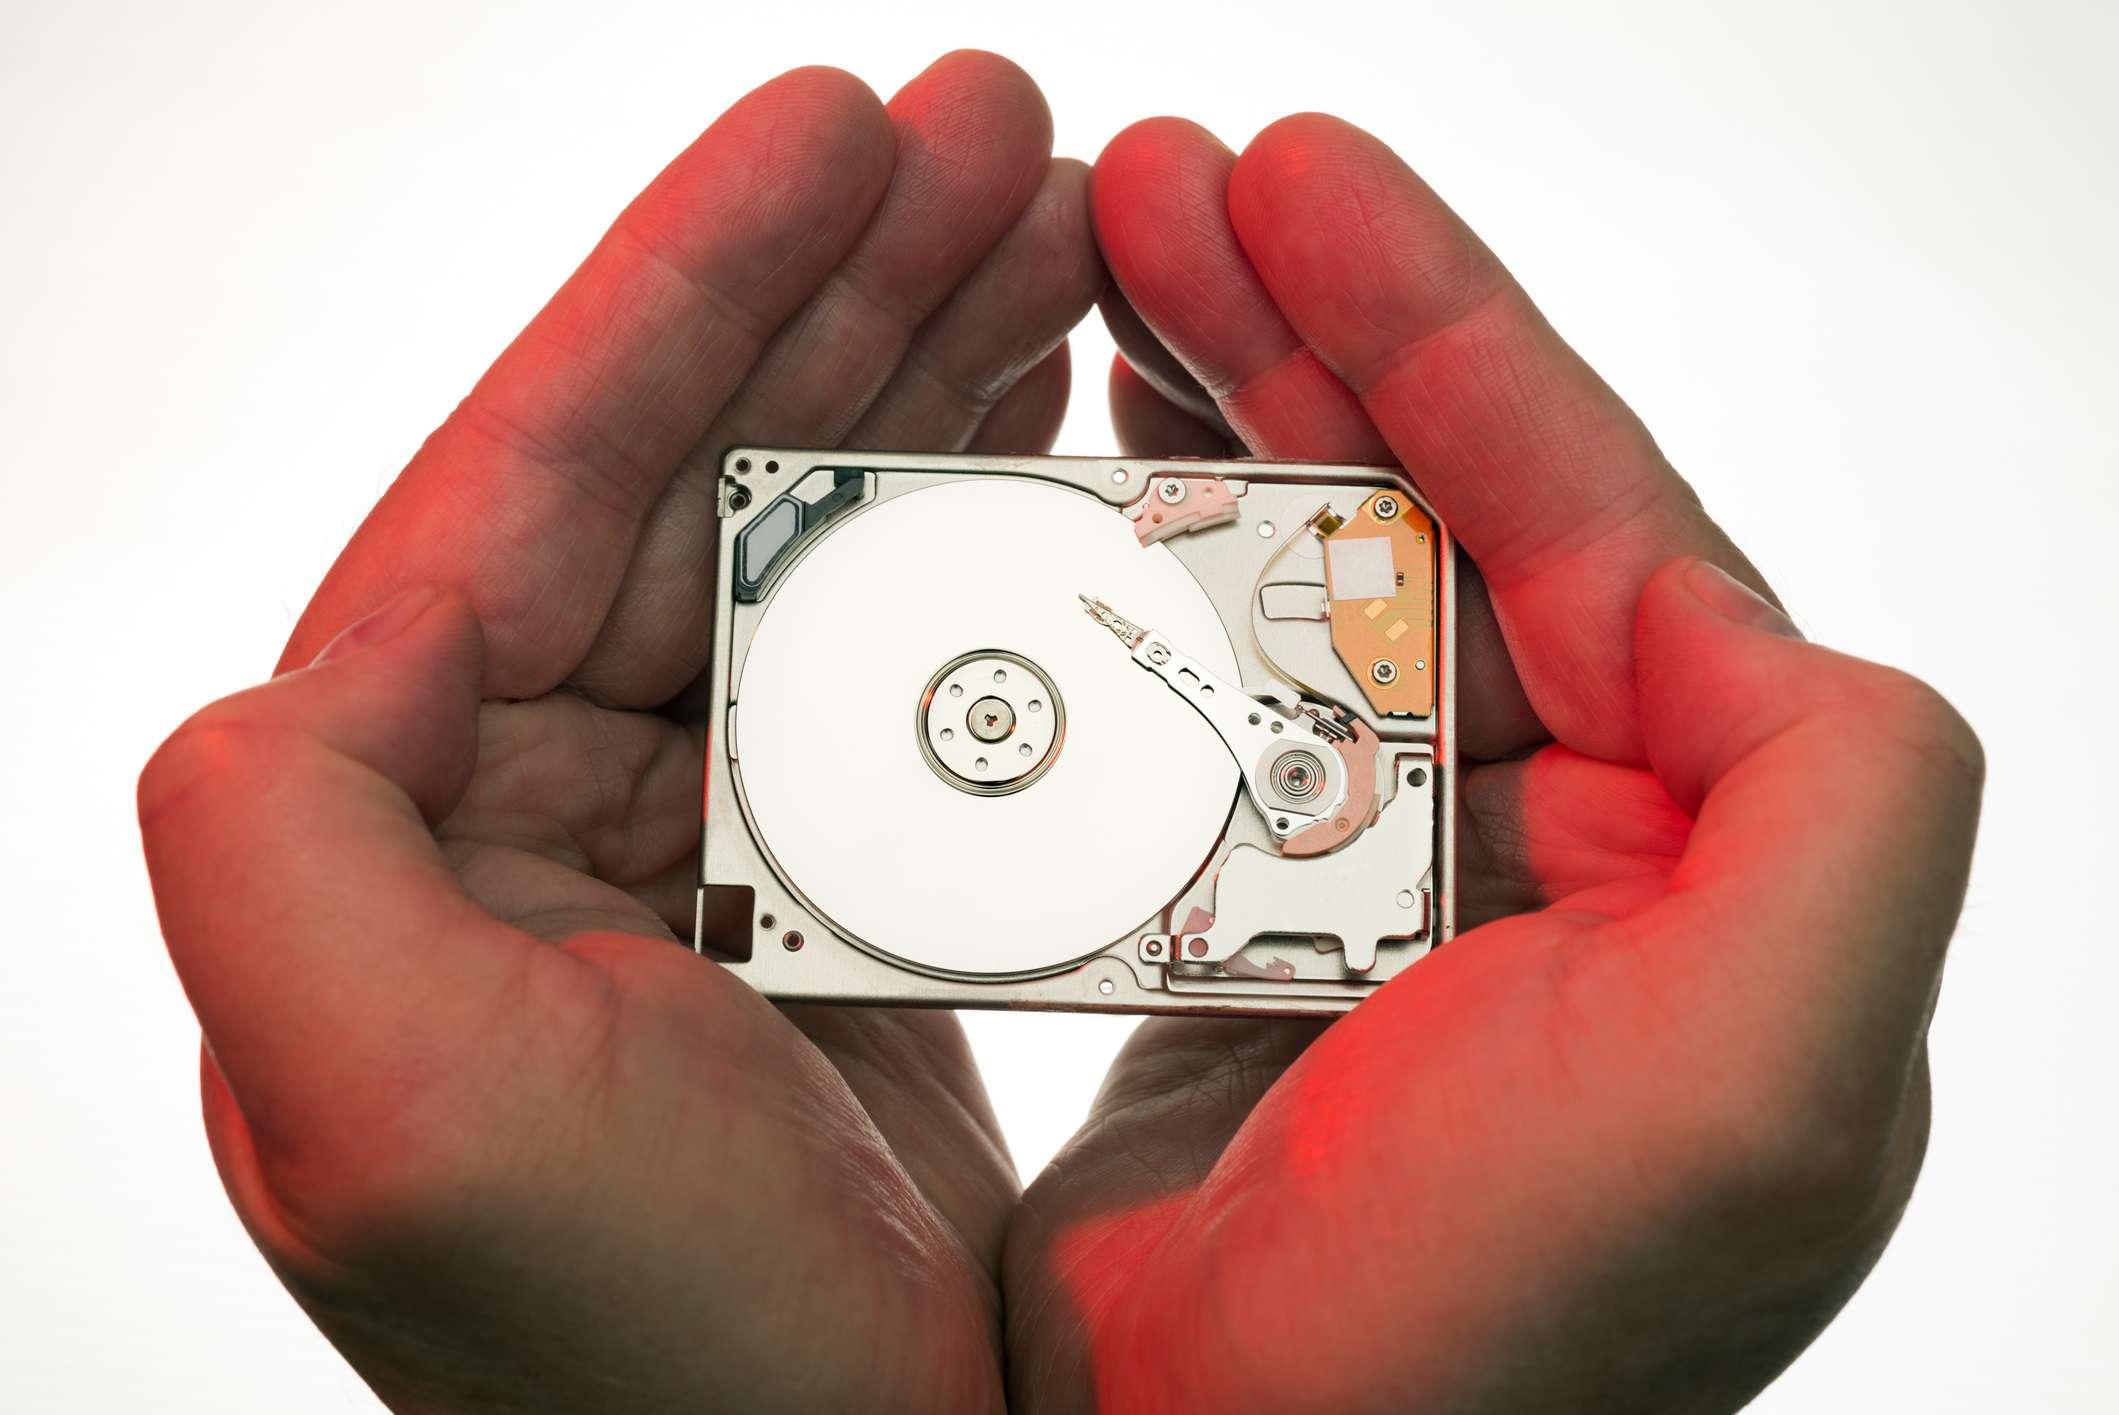 Hands holding computer hard drive